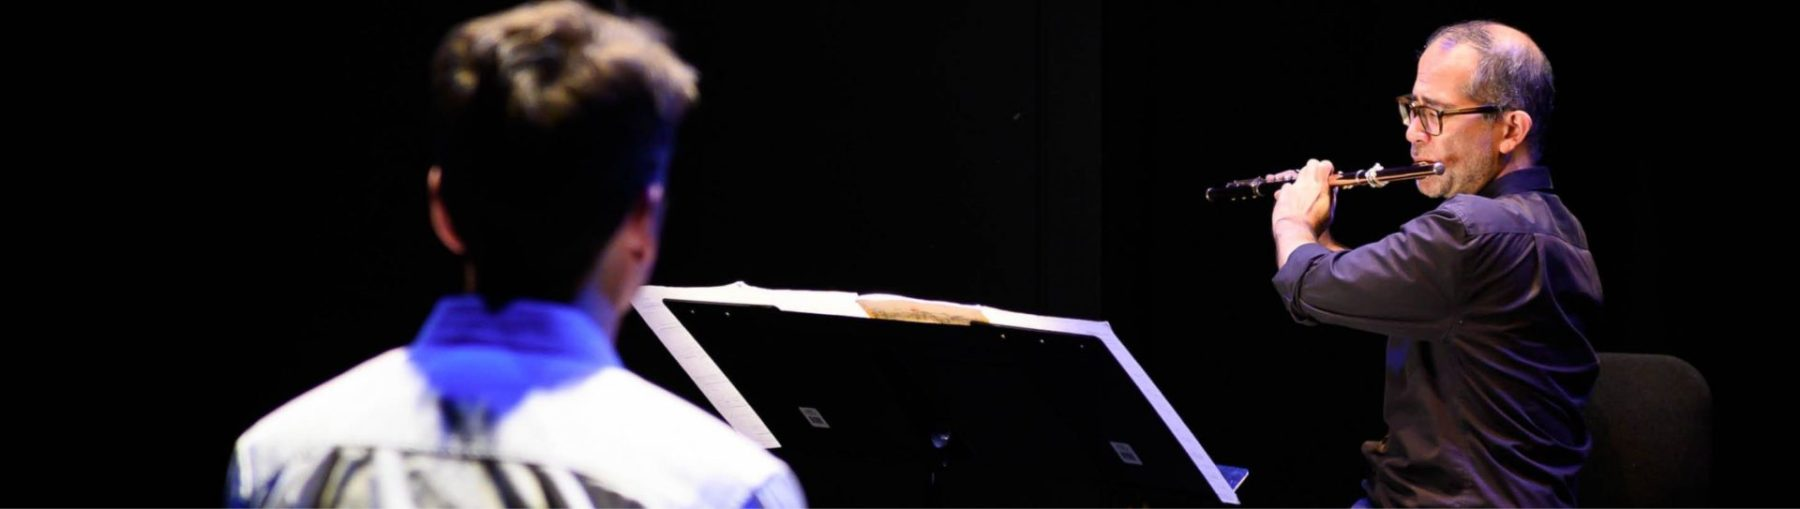 Mark Takeshi McGregor playing the flute for an audience member at As dreams are made